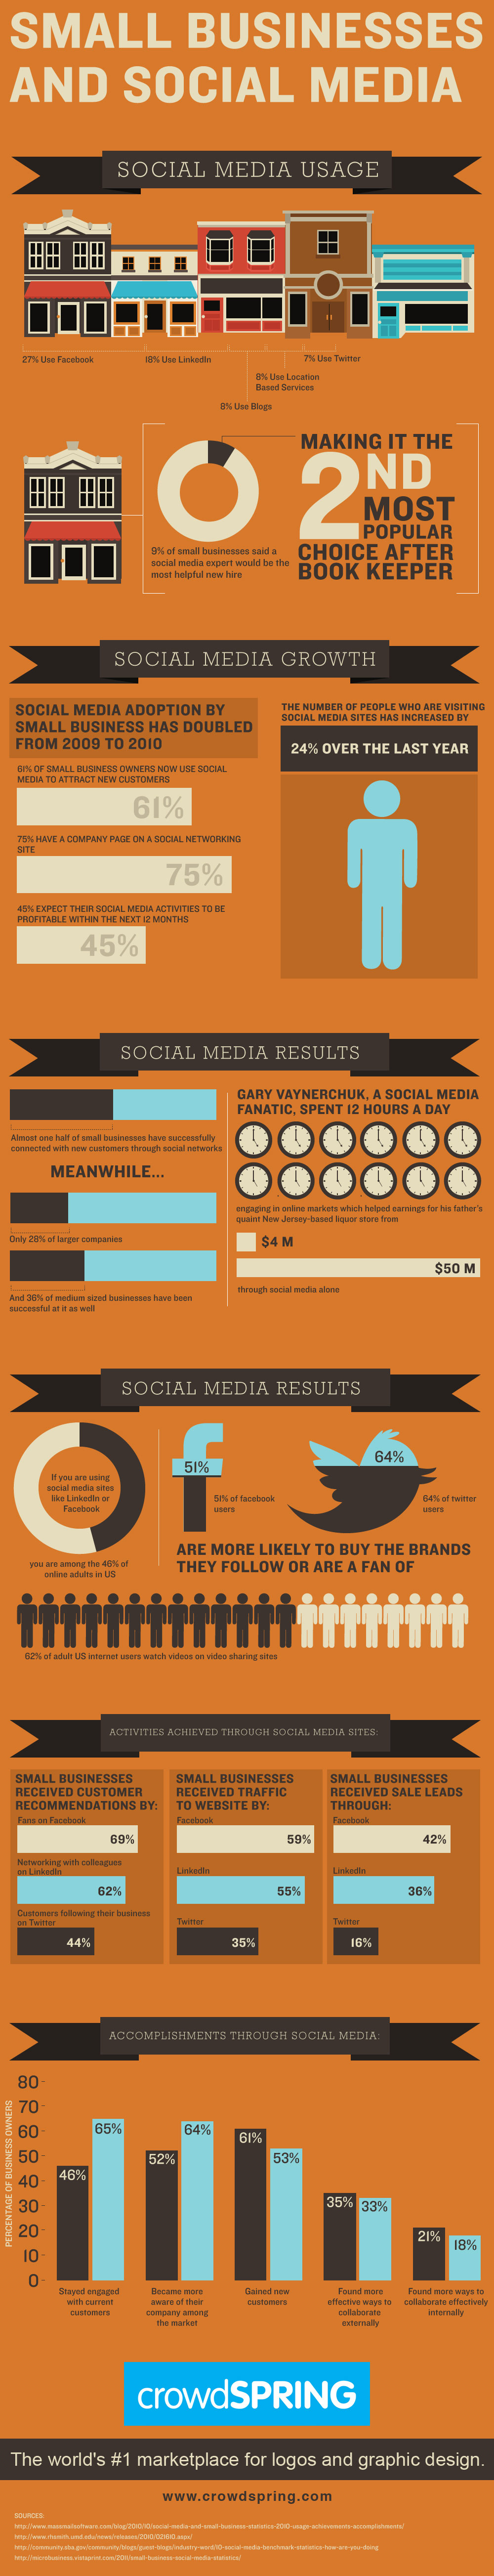 How Small Businesses Are Using Social Media - Infographic